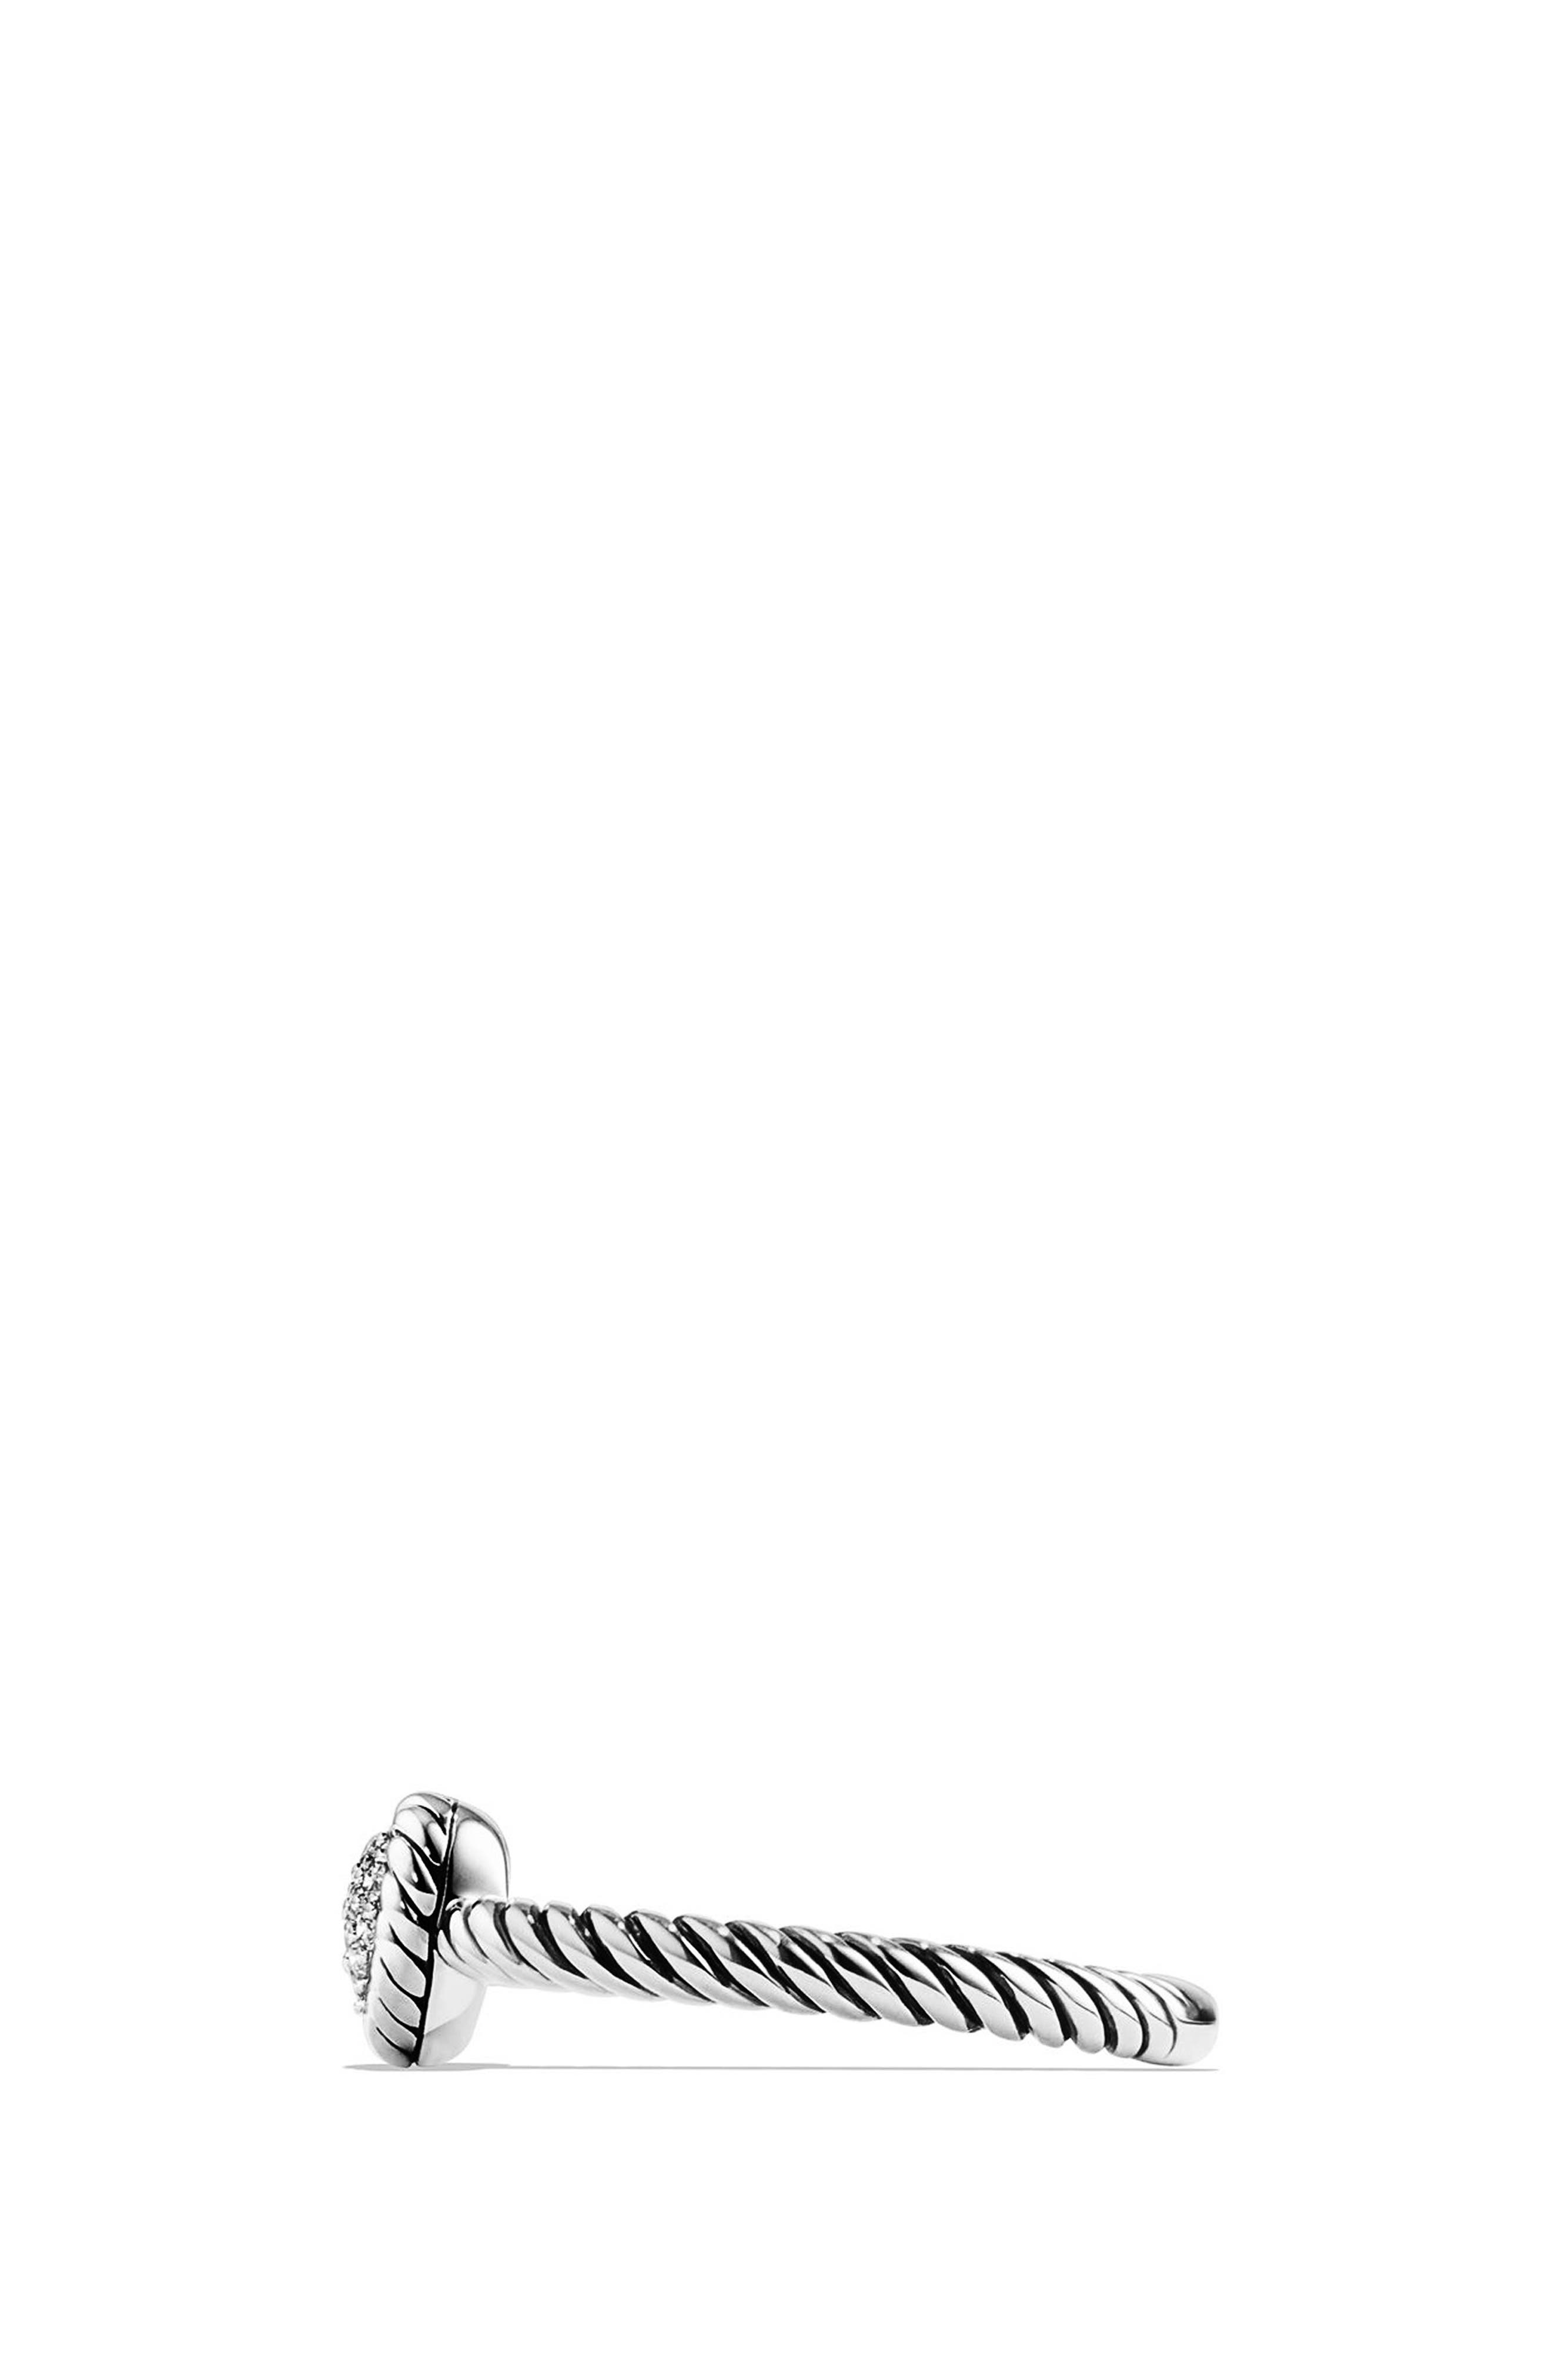 'Châtelaine' Heart Ring with Diamonds,                             Alternate thumbnail 3, color,                             SILVER